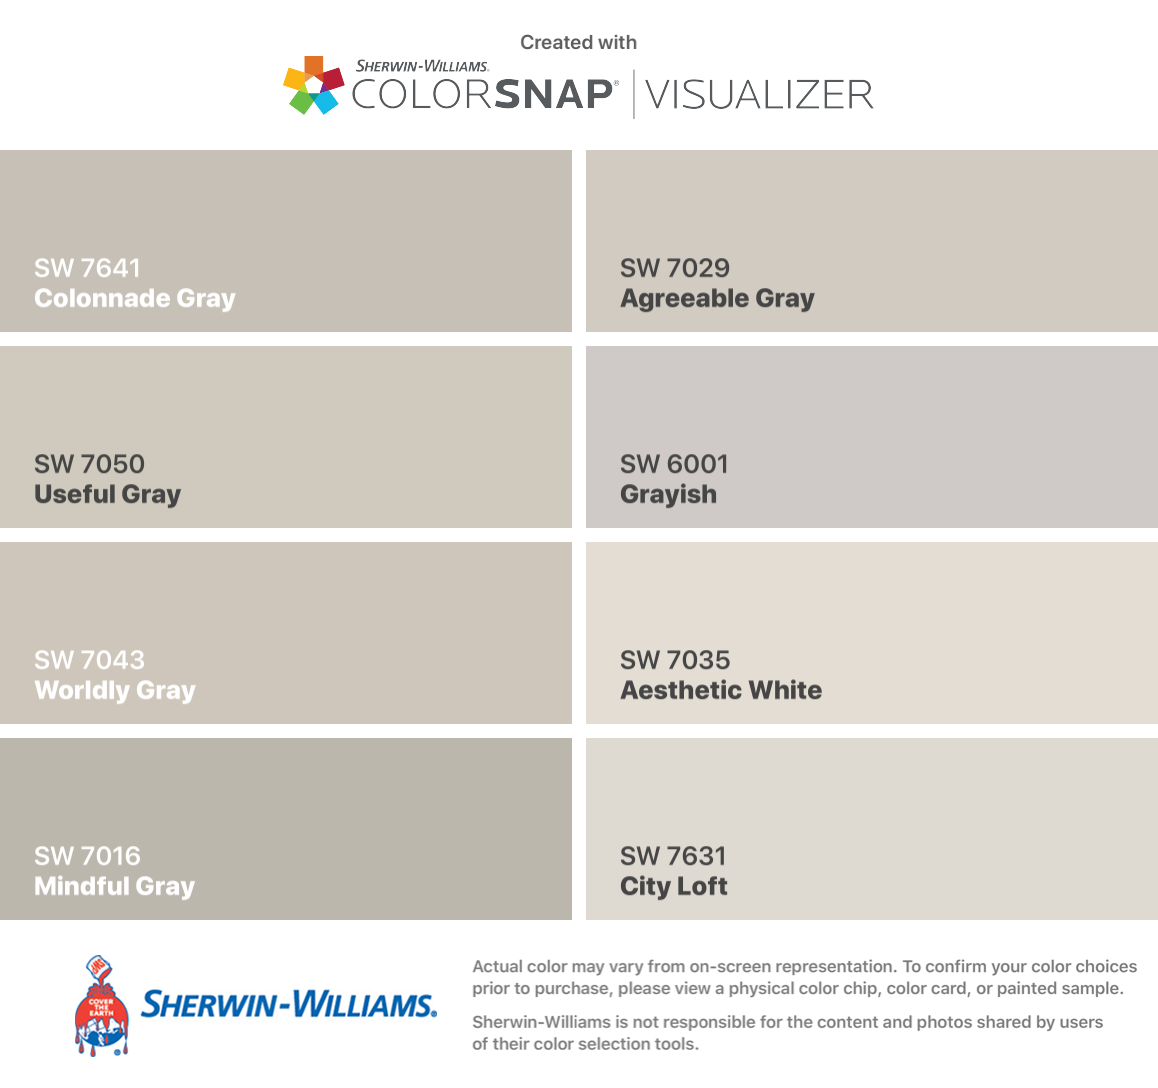 I found these colors with ColorSnap Visualizer for iPhone by Sherwin-Williams: Colonnade Gray (SW 7641), Useful Gray (SW 7050), Worldly Gray (SW 7043), Mindful Gray (SW 7016), Agreeable Gray (SW 7029), Grayish (SW 6001), Aesthetic White (SW 7035), City Loft (SW 7631). #cityloftsherwinwilliams I found these colors with ColorSnap Visualizer for iPhone by Sherwin-Williams: Colonnade Gray (SW 7641), Useful Gray (SW 7050), Worldly Gray (SW 7043), Mindful Gray (SW 7016), Agreeable Gray (SW 7029),